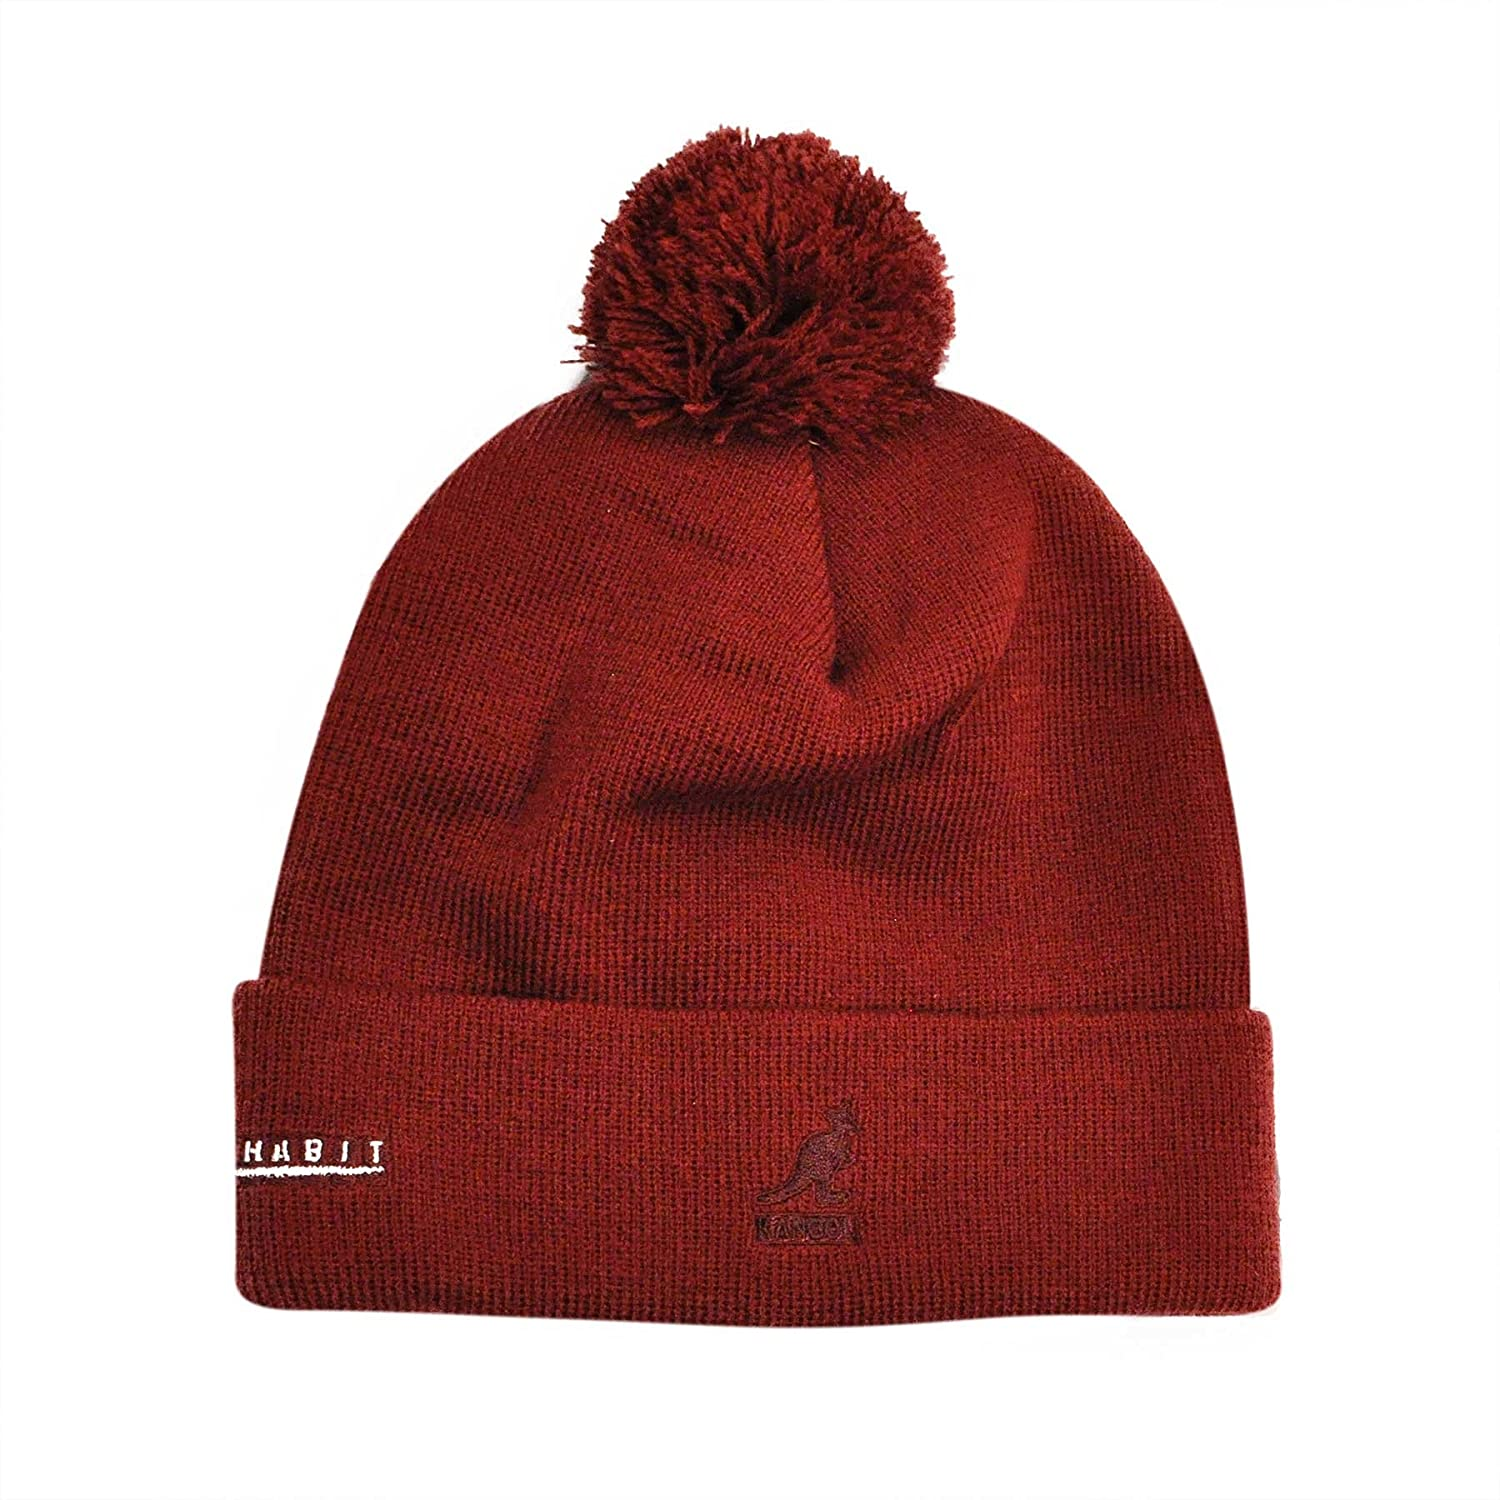 1d968bbc683 Kangol Bad Habit Beanie Mens Bobble Beanie Hat with Envelope - Red - One  size  Amazon.co.uk  Clothing